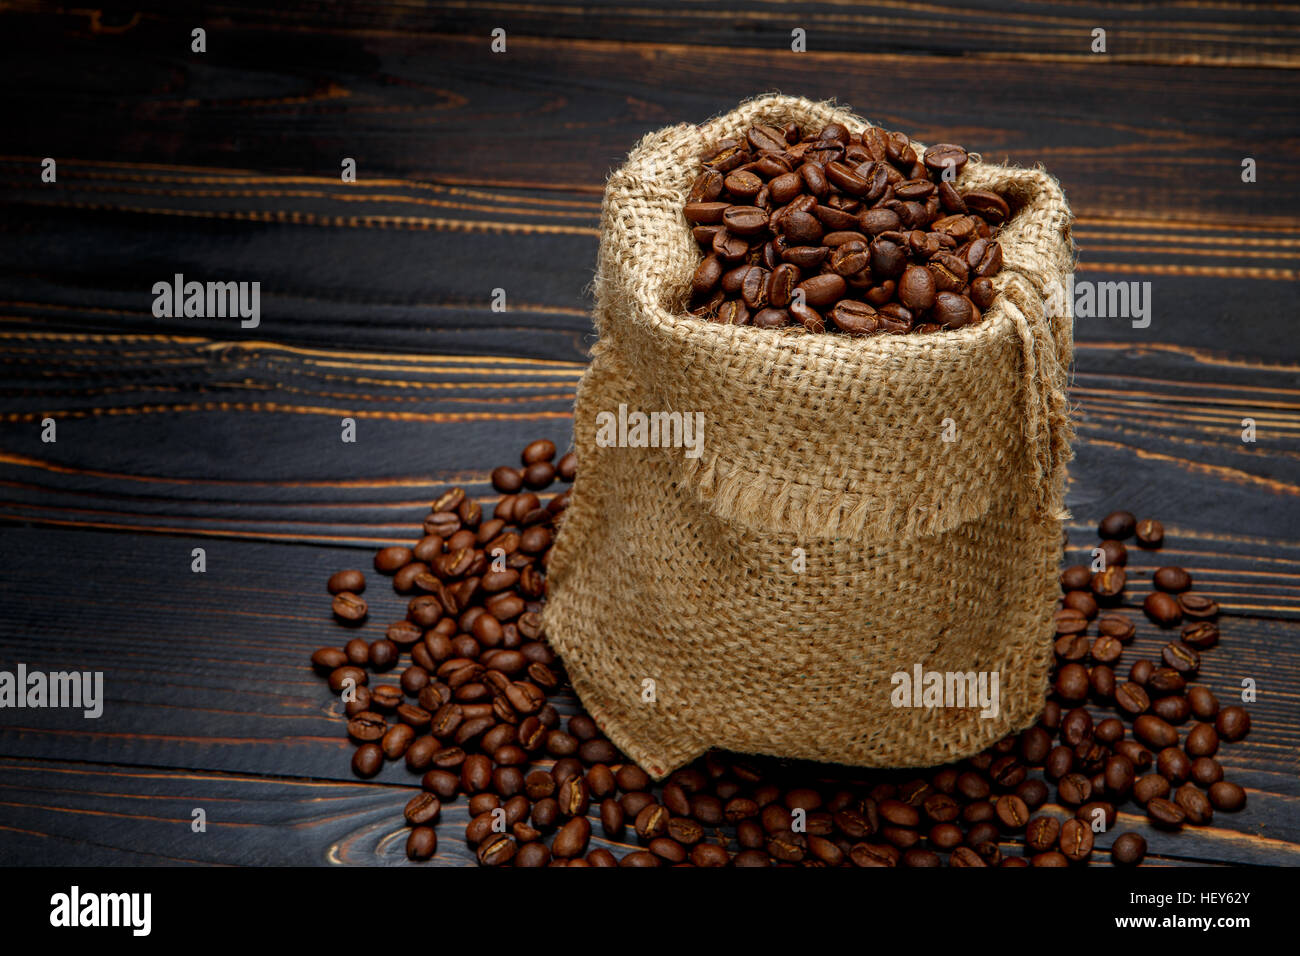 roasted coffee beans on wooden background - Stock Image